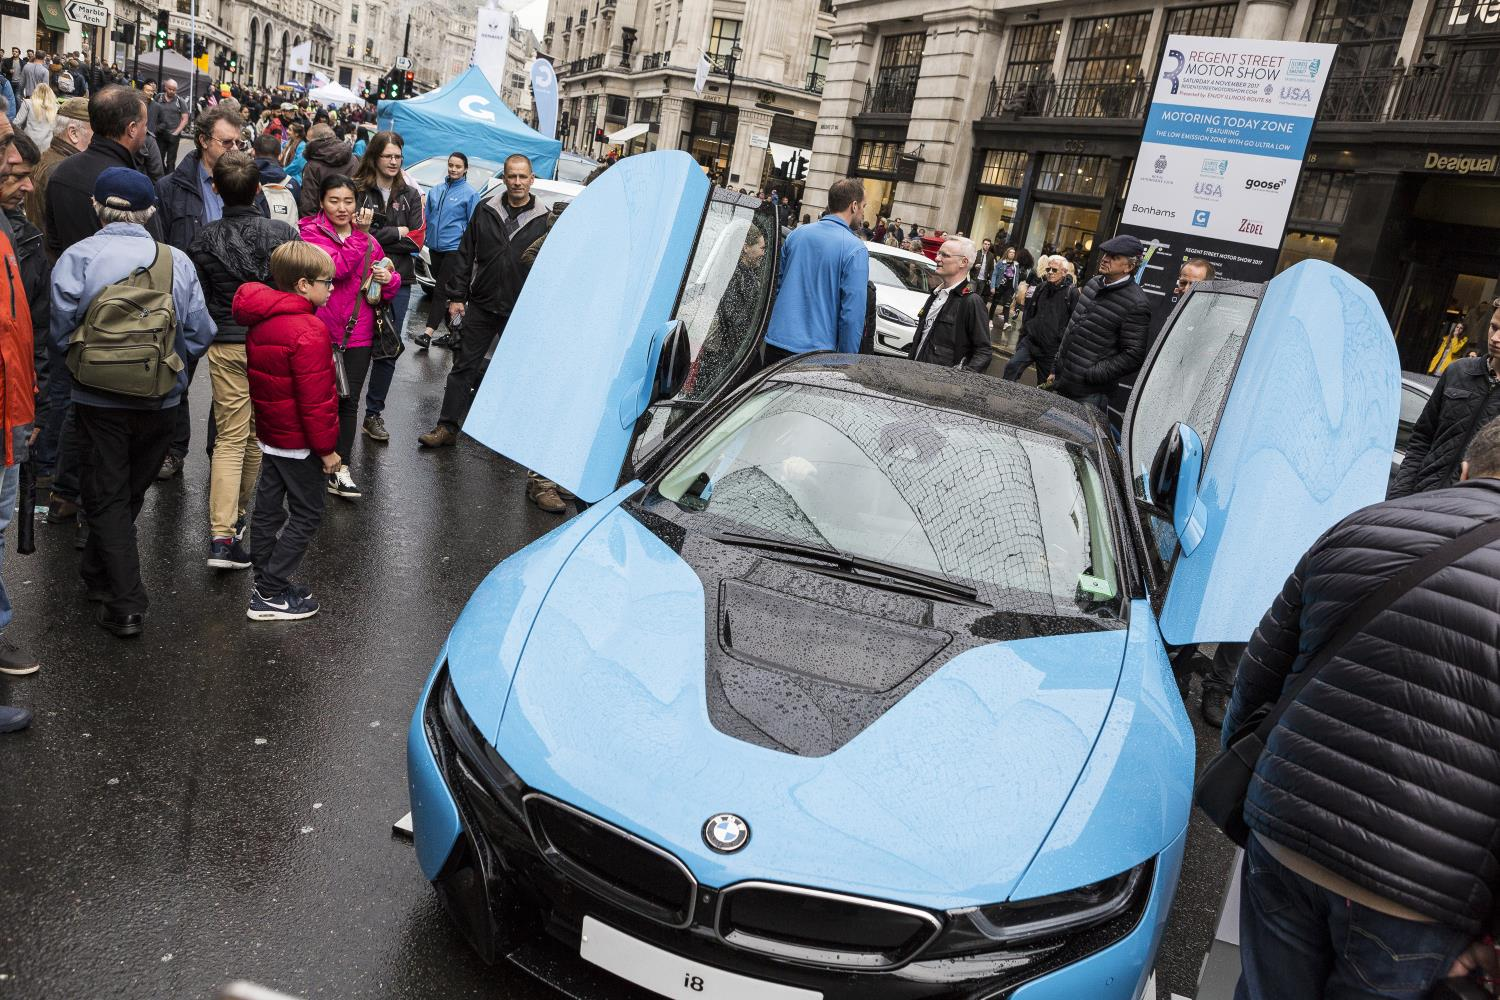 Huge crowds at the annual Regent Street Motor Show